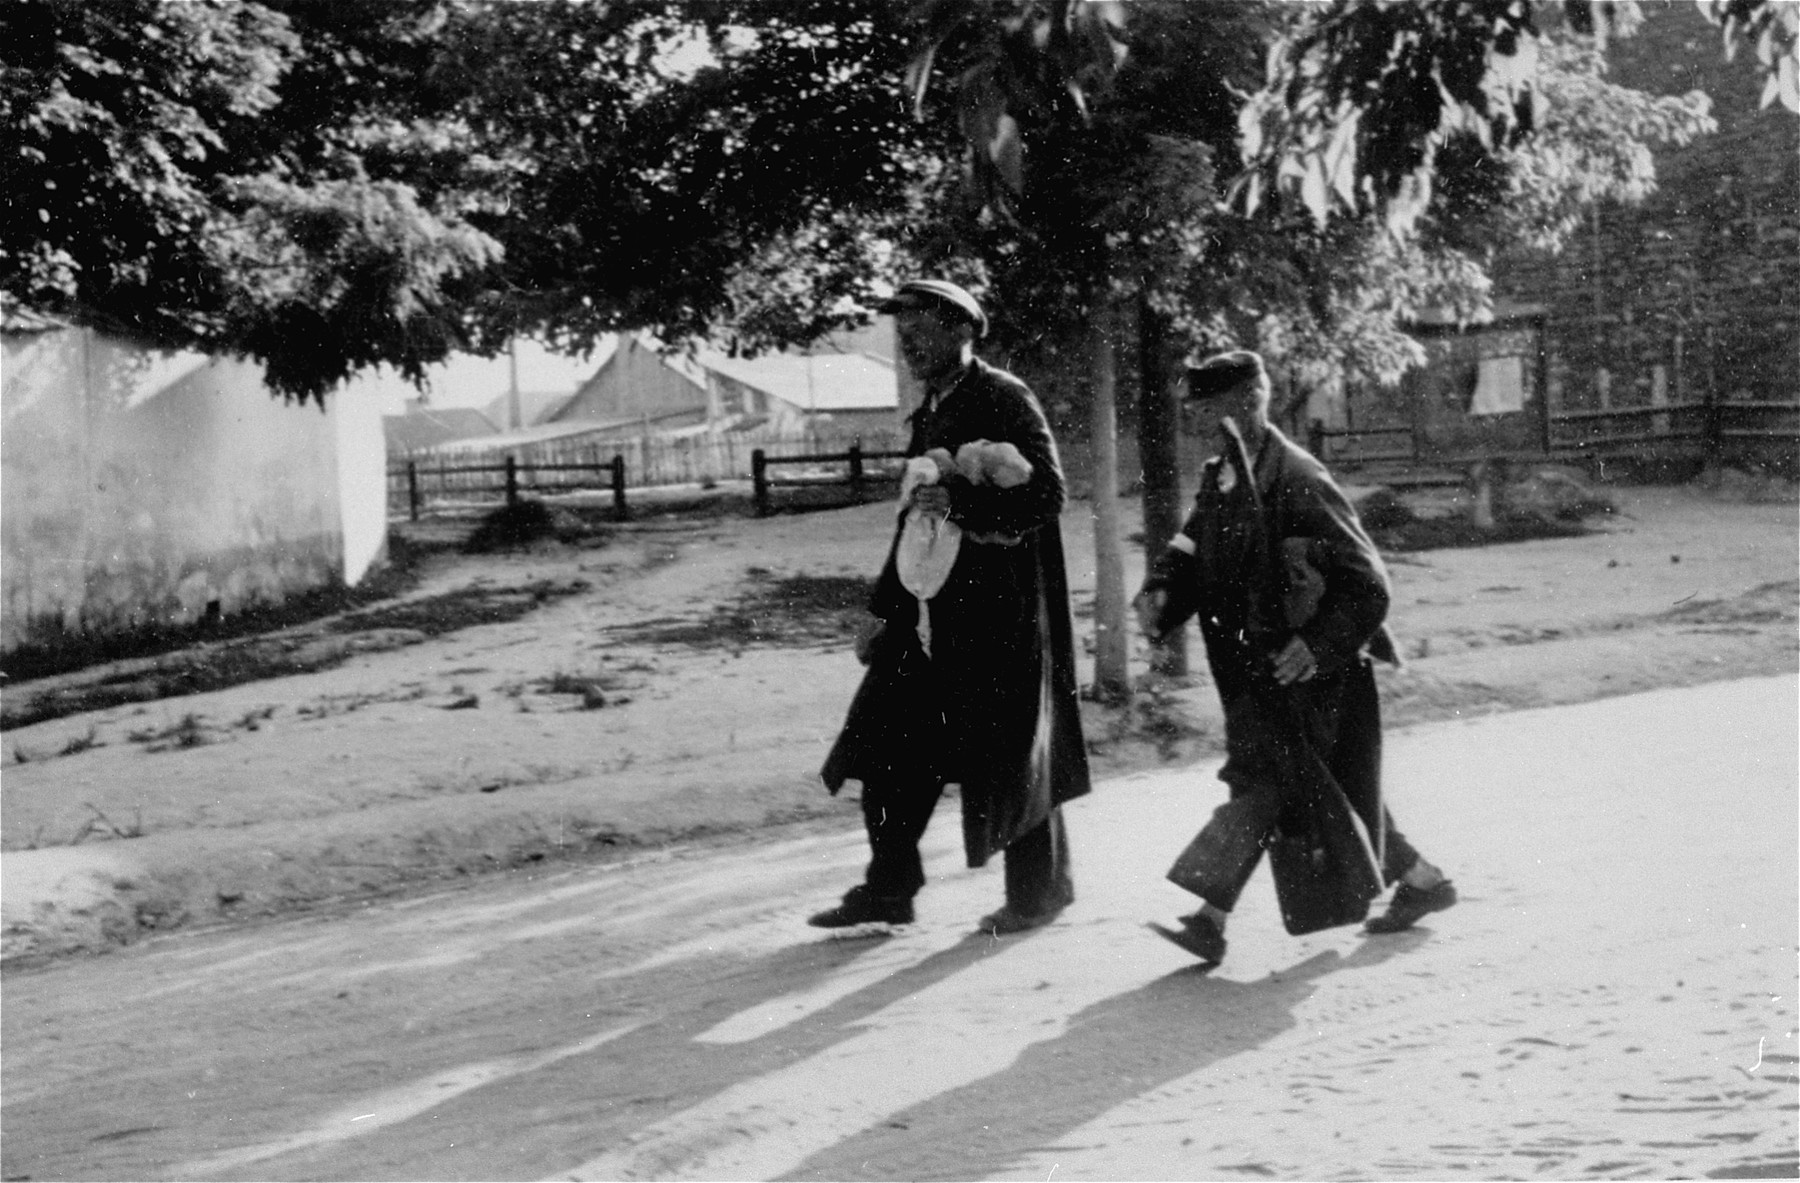 Two Jewish men who have been conscripted for forced labor, walk along an unpaved road in Konskowola.  One of them carries a shovel.